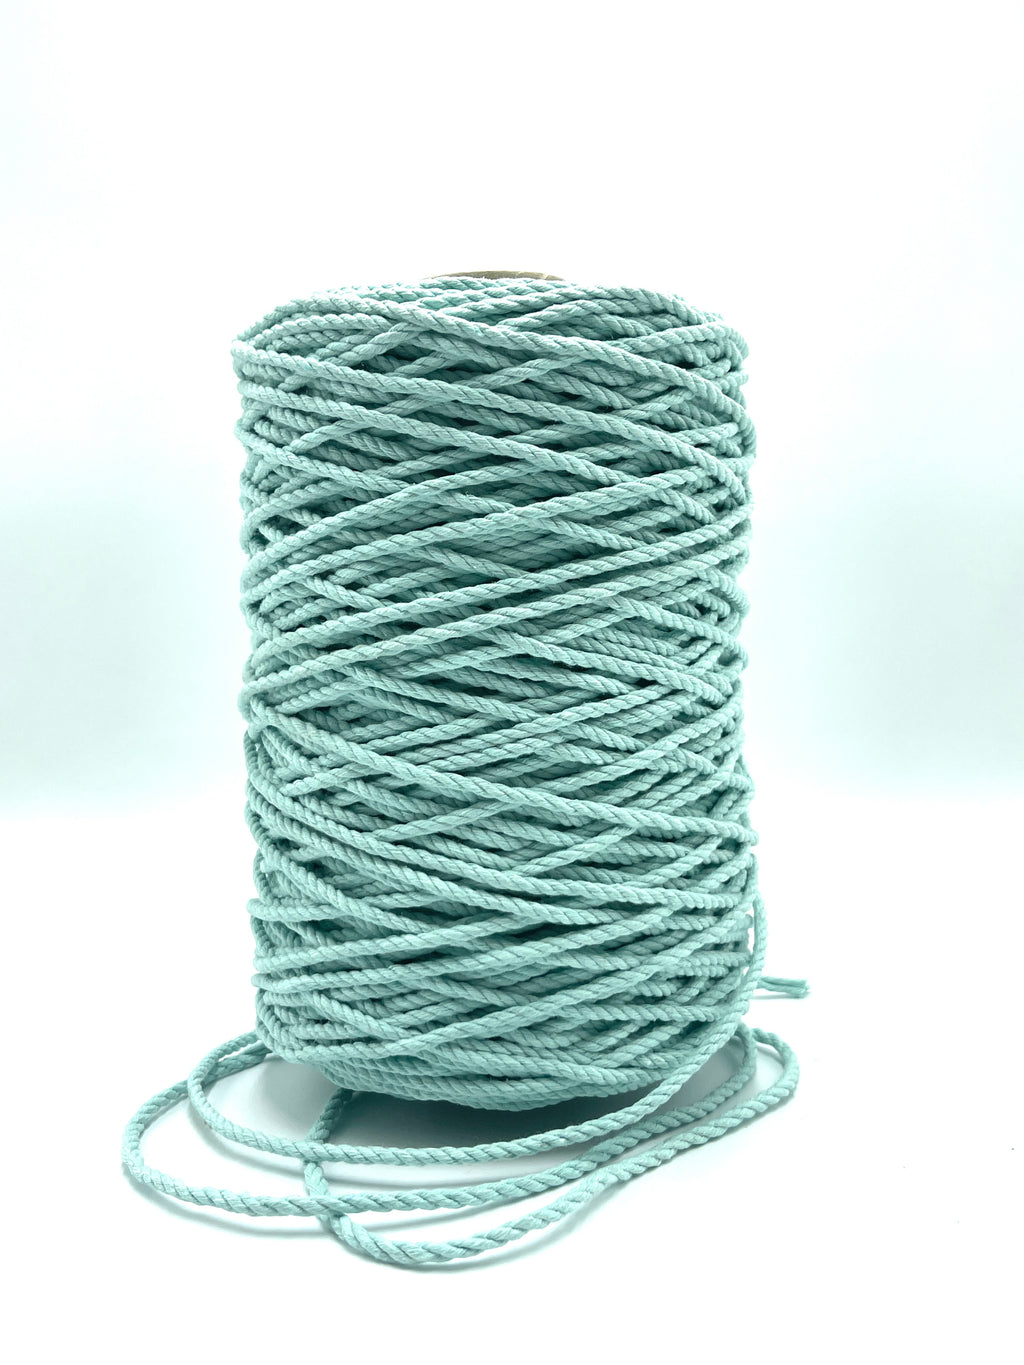 4mm 3ply Rope - Sea Foam - 1kg